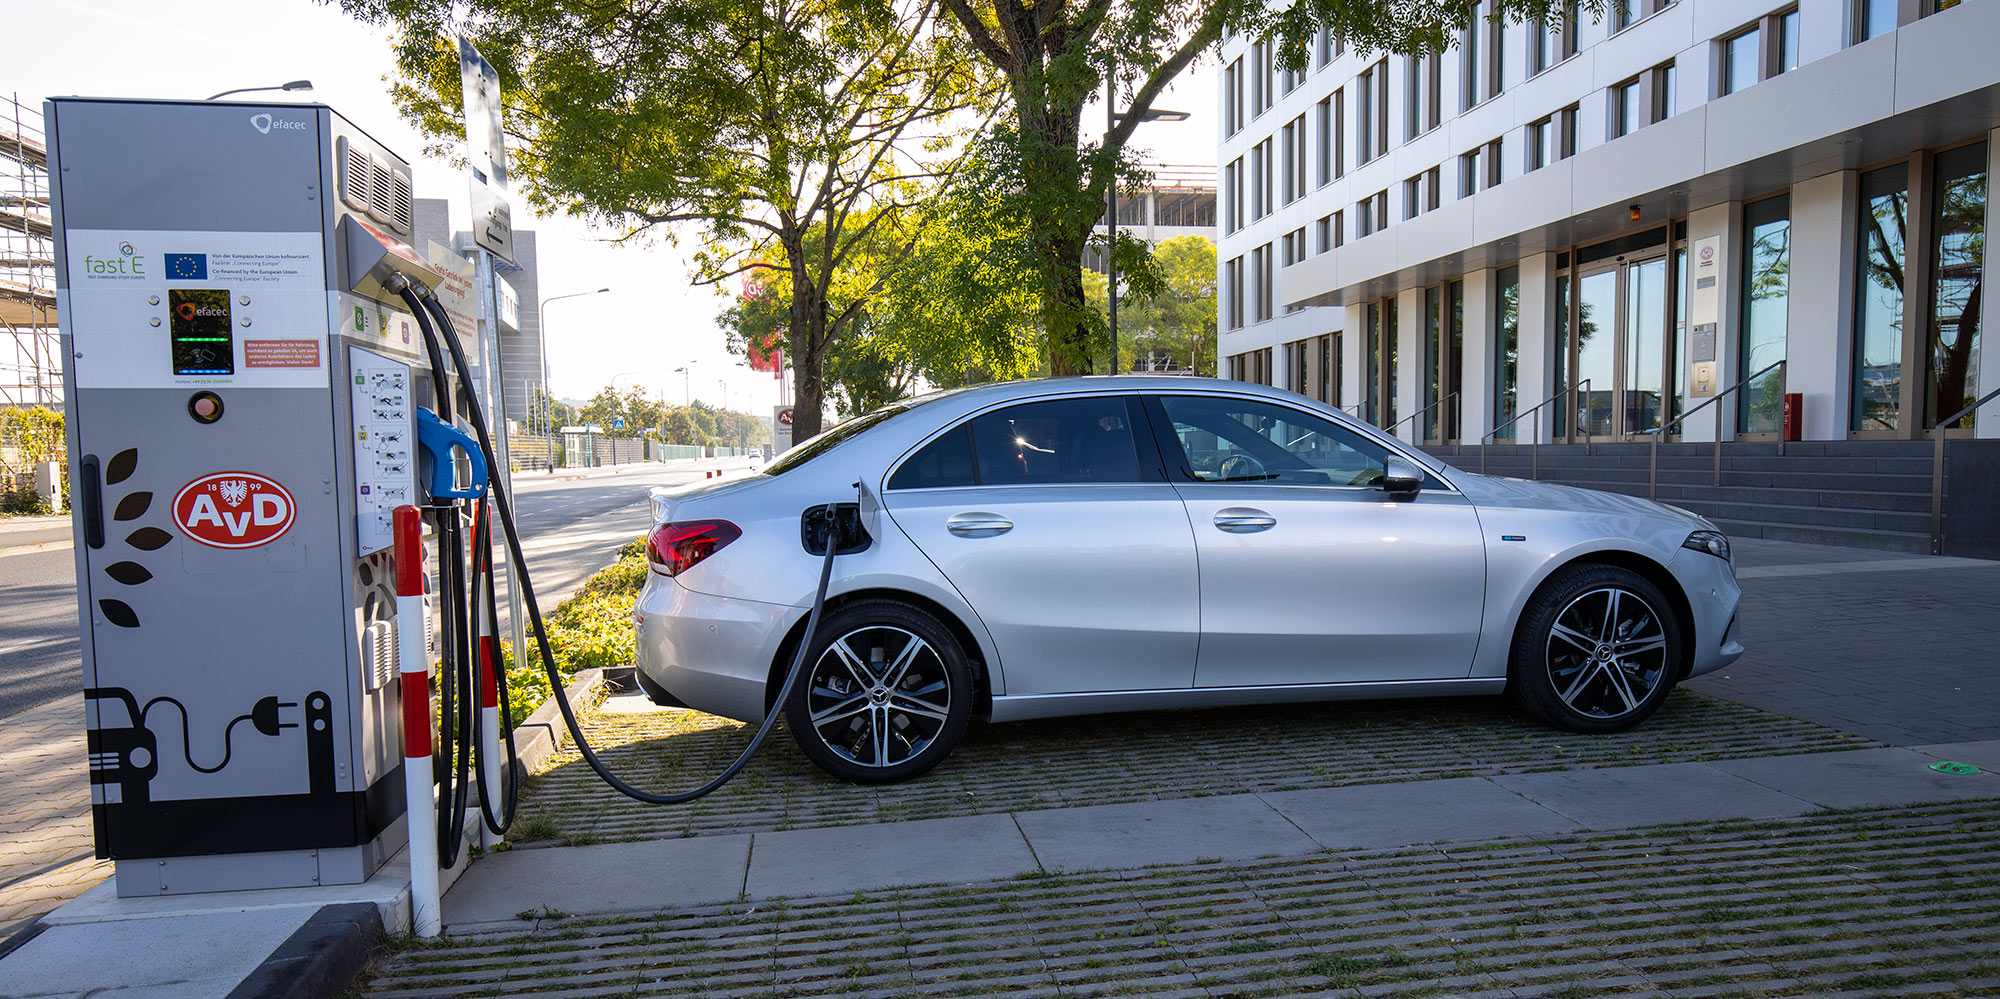 Mercedes-Benz A 250e Sedan achieves CO2 emissions of about 32 g/km. DC charging from 10 to 80% takes 25 minutes.